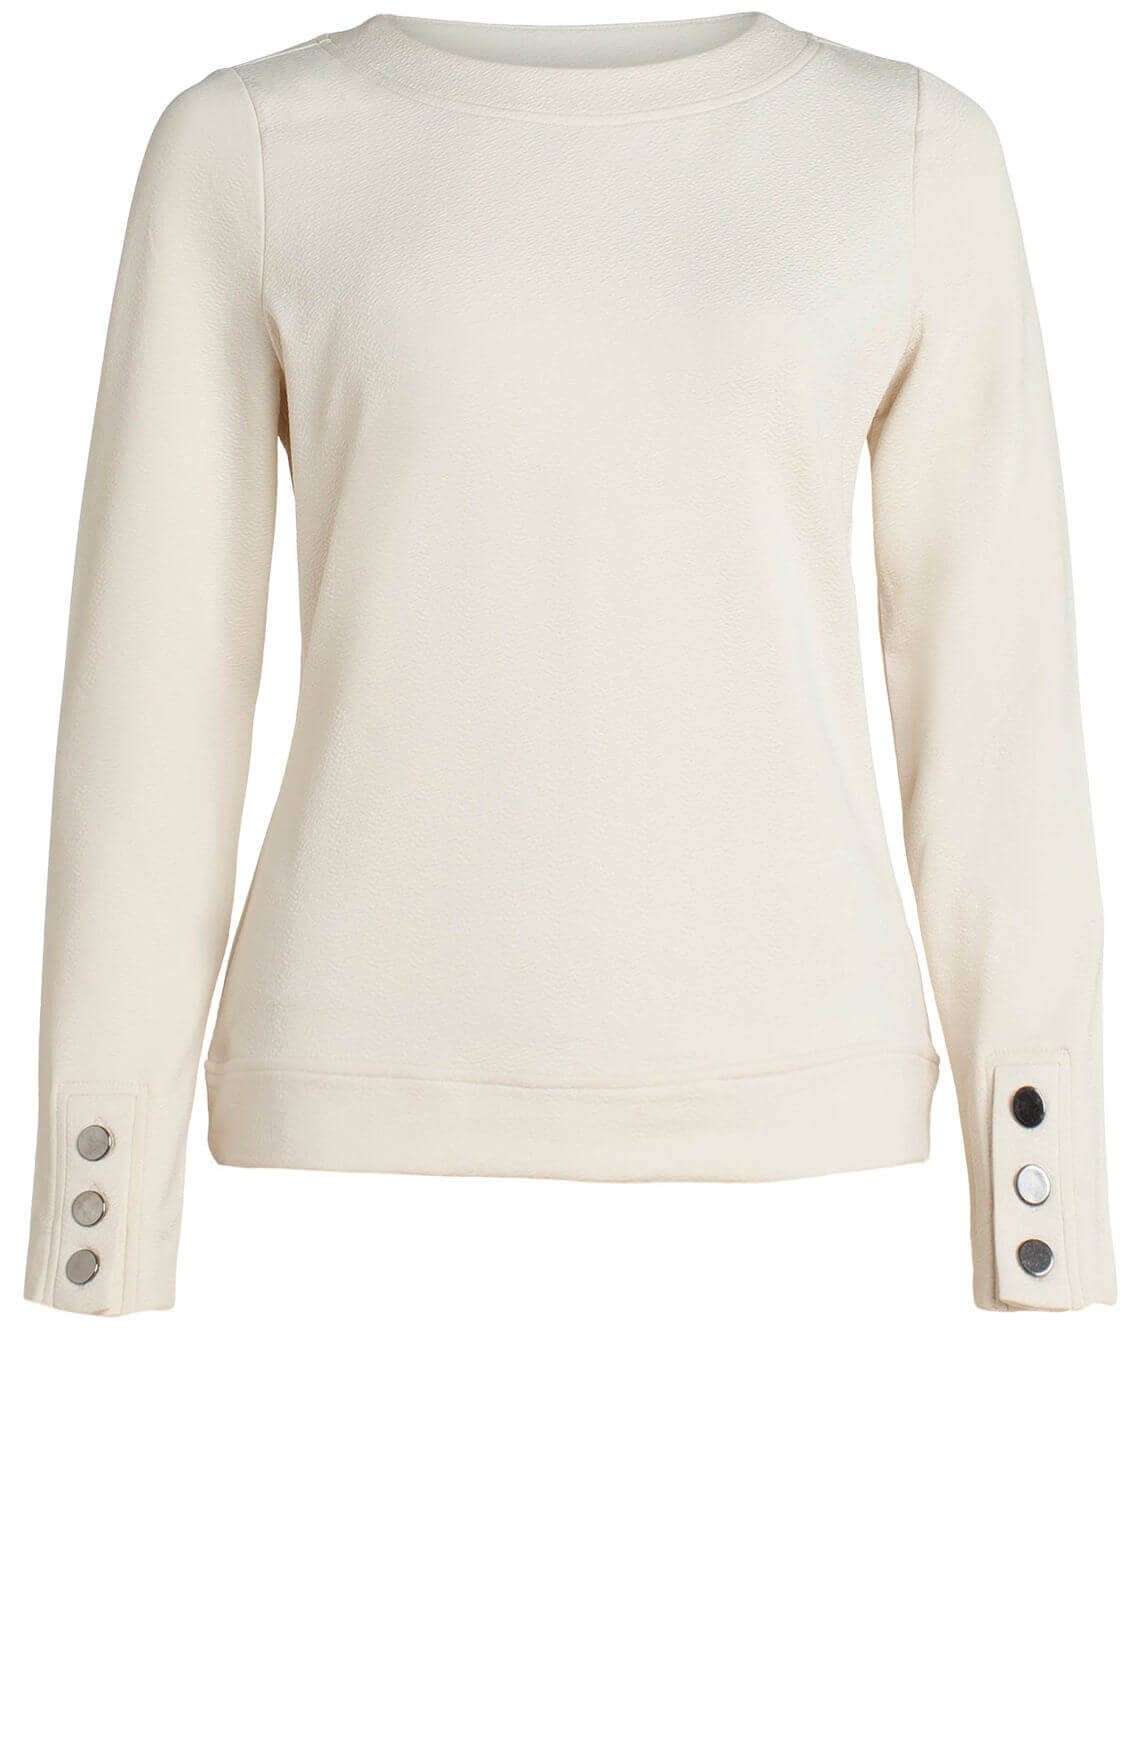 Anna Dames Sweater Wit